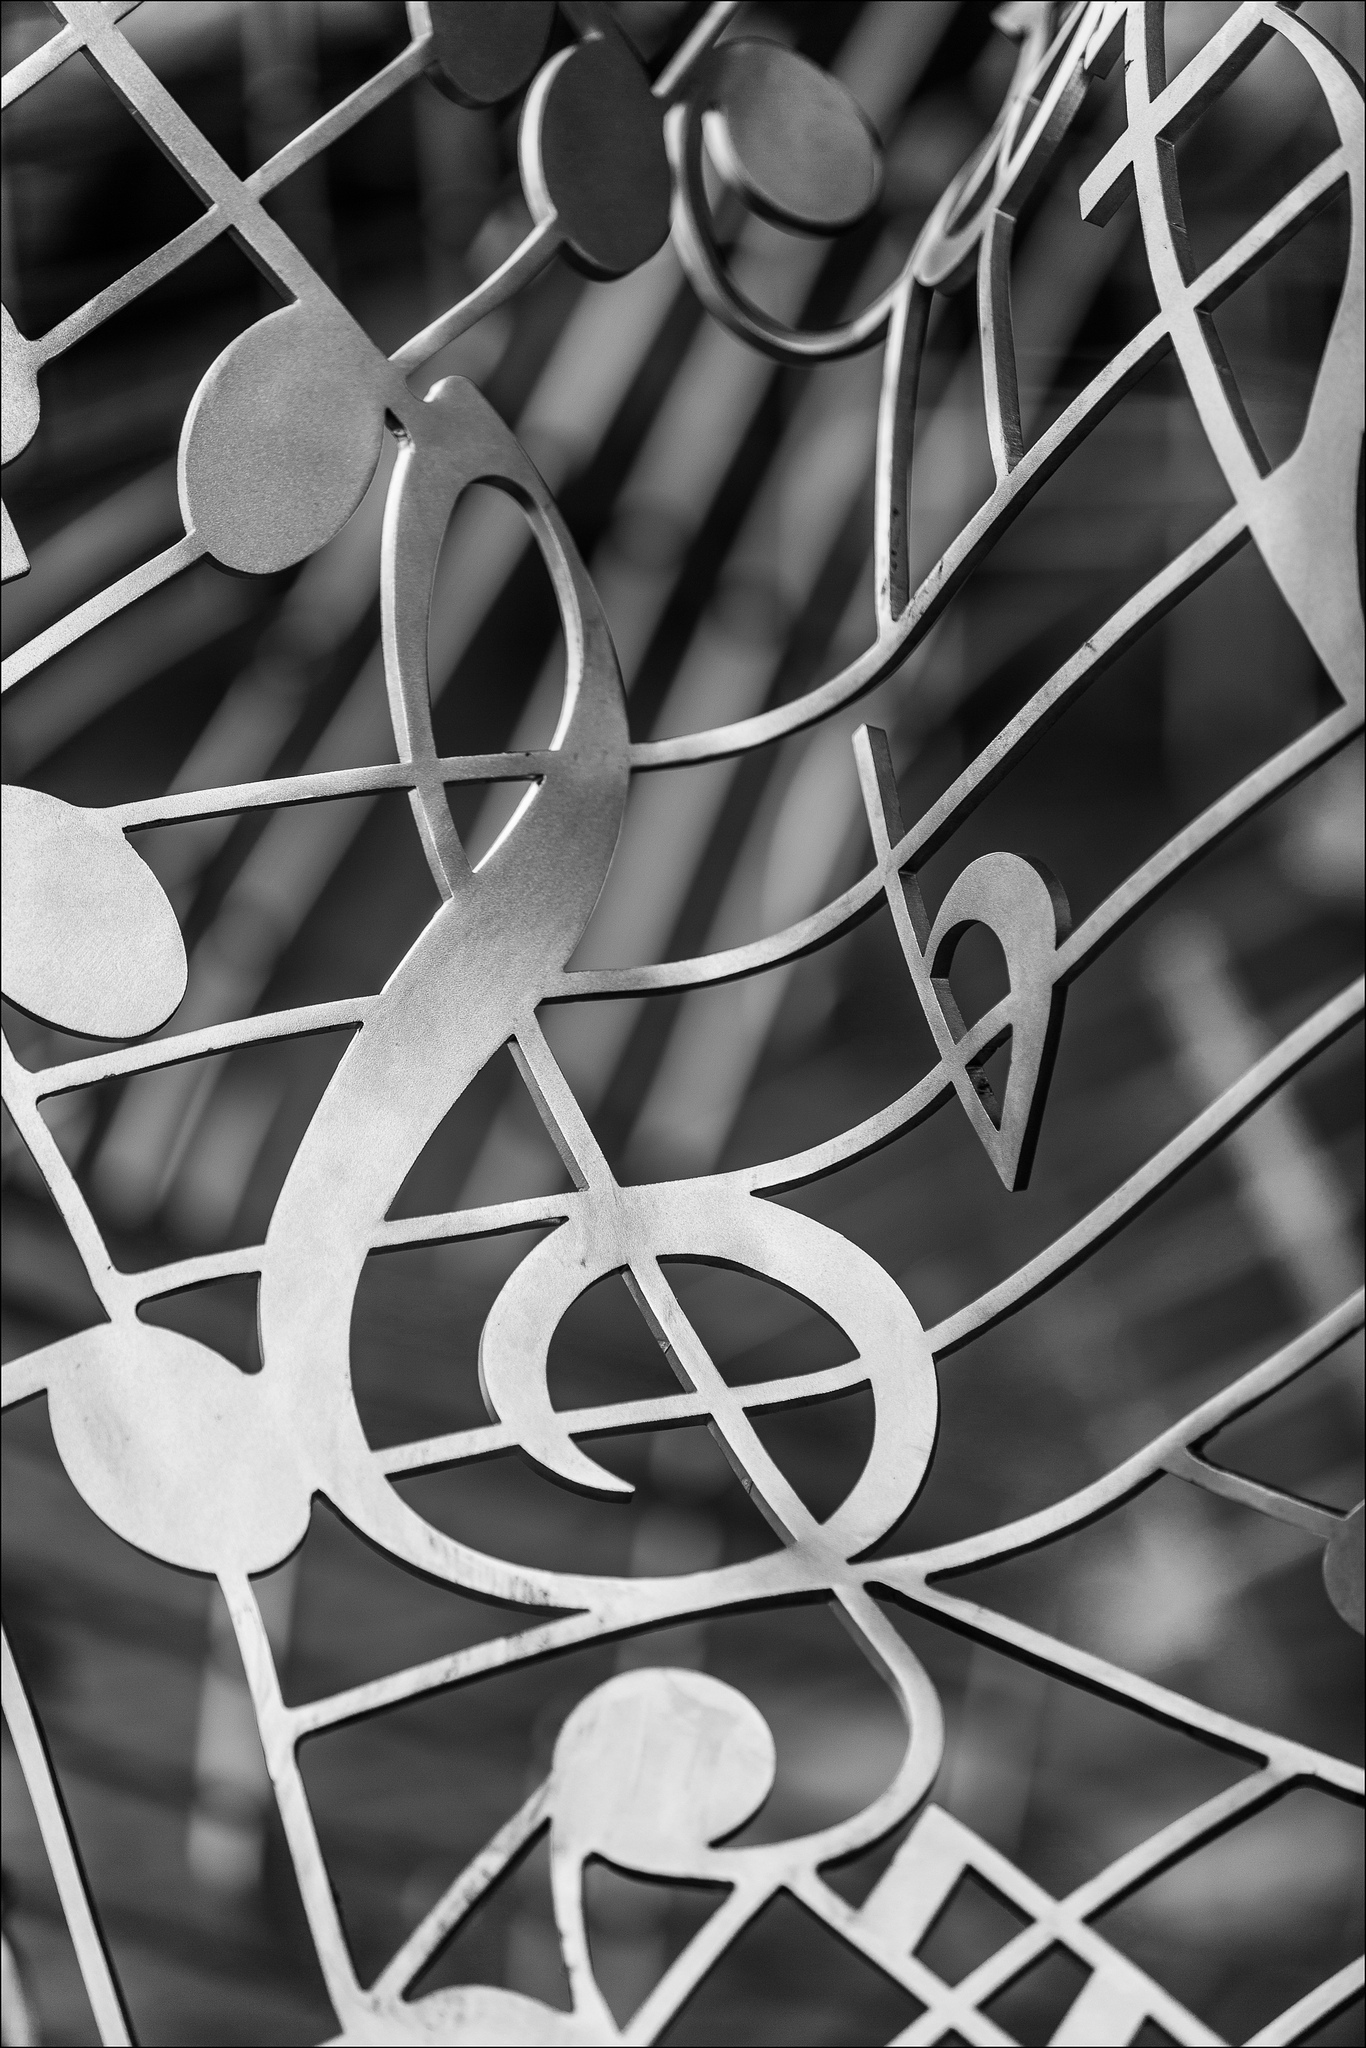 music chamber appreciation ensemble musical notes variation1 silent weekly challenge clef flickr composition treble pro adrien sifre